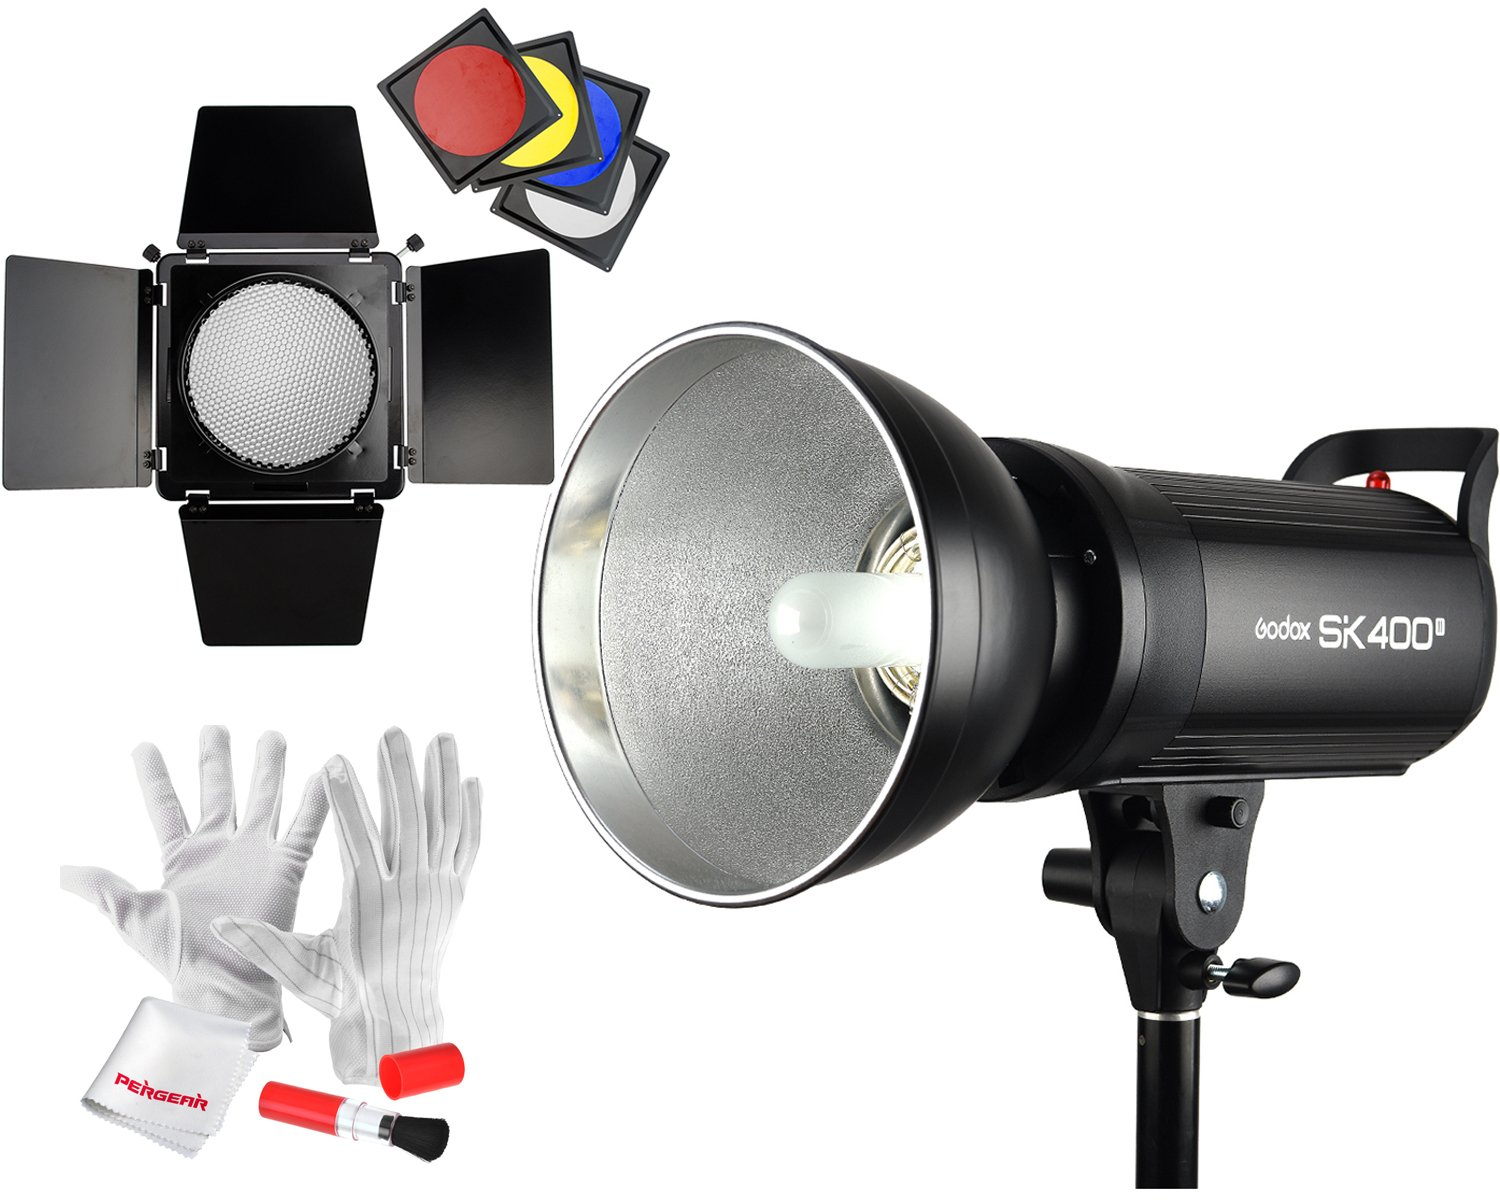 Godox SK400II Studio Strobe 400Ws GN65 5600K Bowens Mount Monolight, Built-in Godox 2.4G Wireless System, 150W Modeling Lamp, Outstanding Output Stability, Anti-Preflash, 1/16-1/1 40 Steps Output by Godox